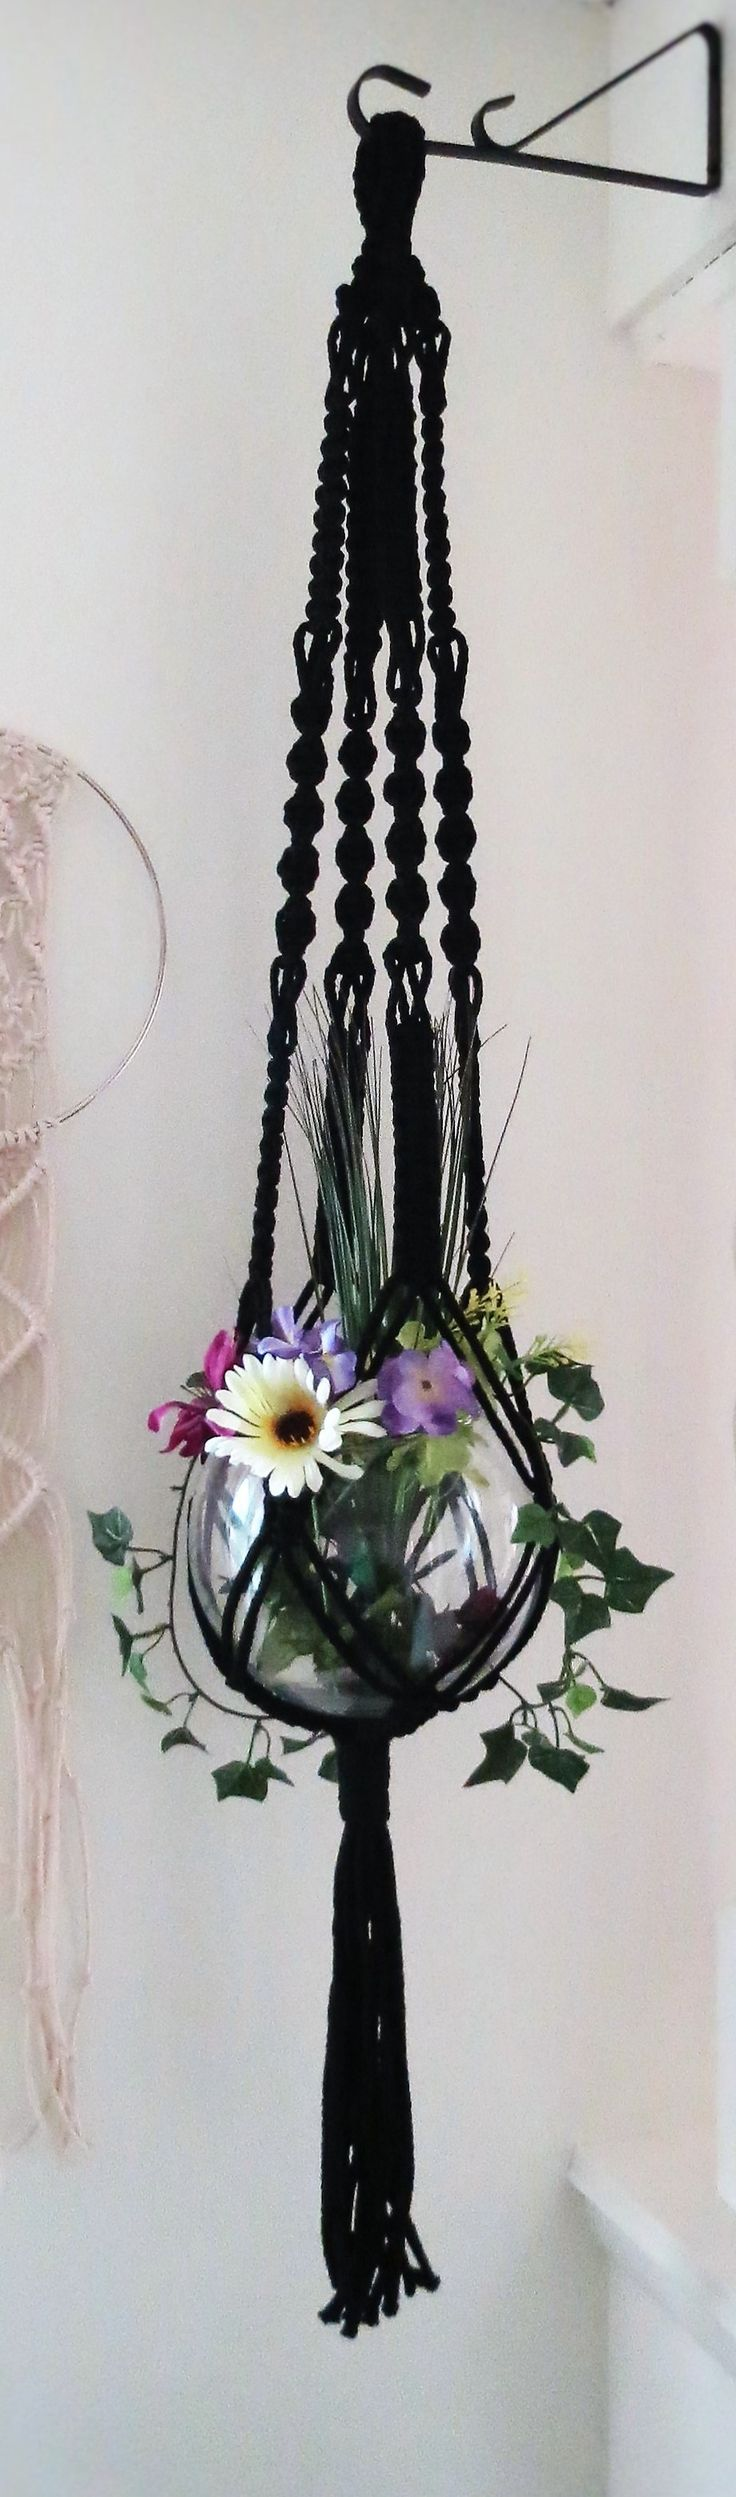 "BLACK plant hanger, 45"", macrame hanging planter, pot holder, hanging basket, dark, gothic, gift, house plant hanger, indoor, outdoor, 70s"